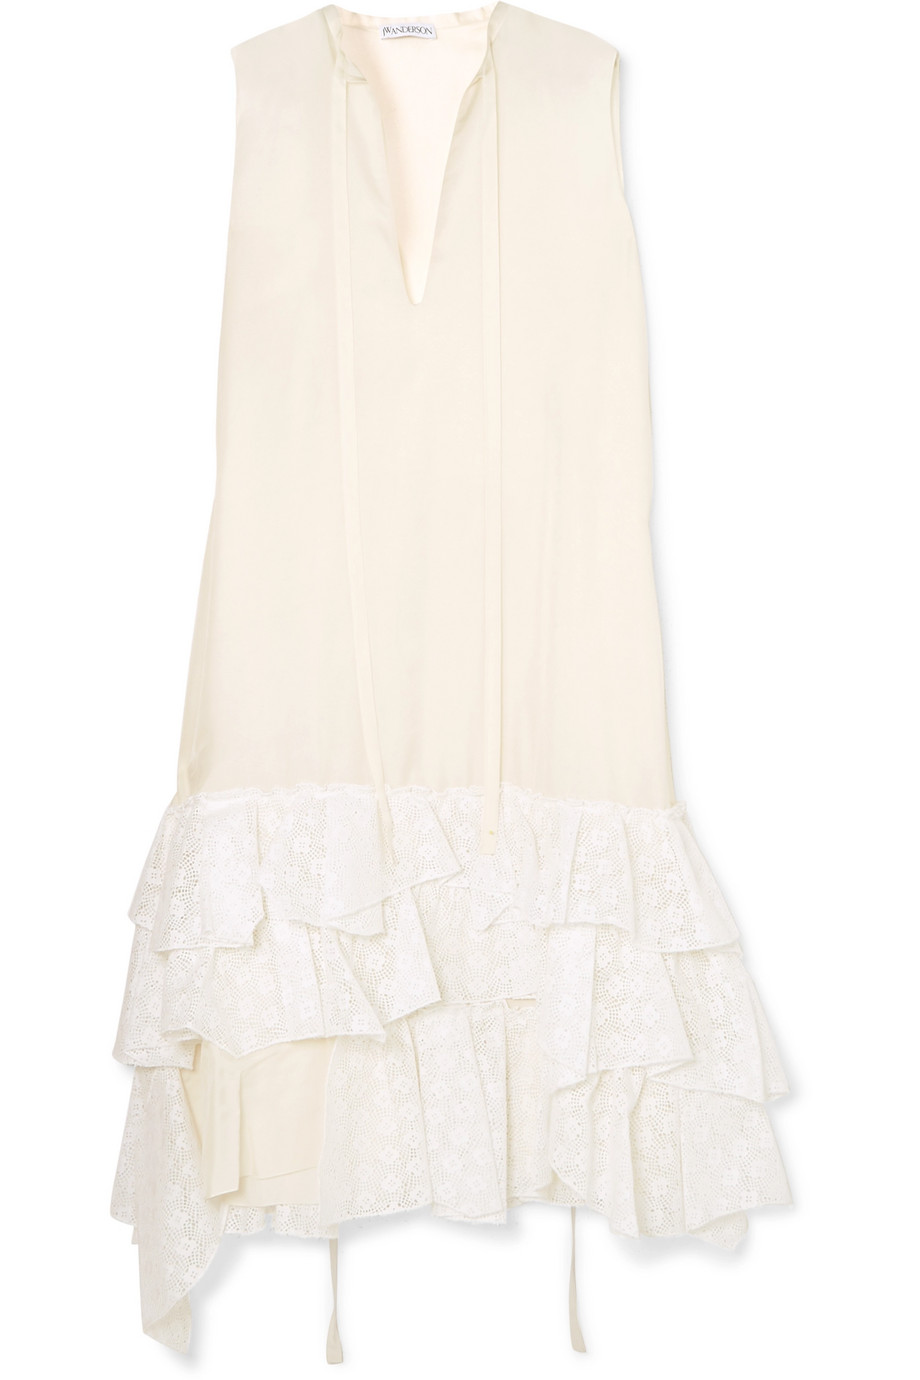 JW Anderson Asymmetric ruffled crepe de chine and broderie anglaise cotton dress